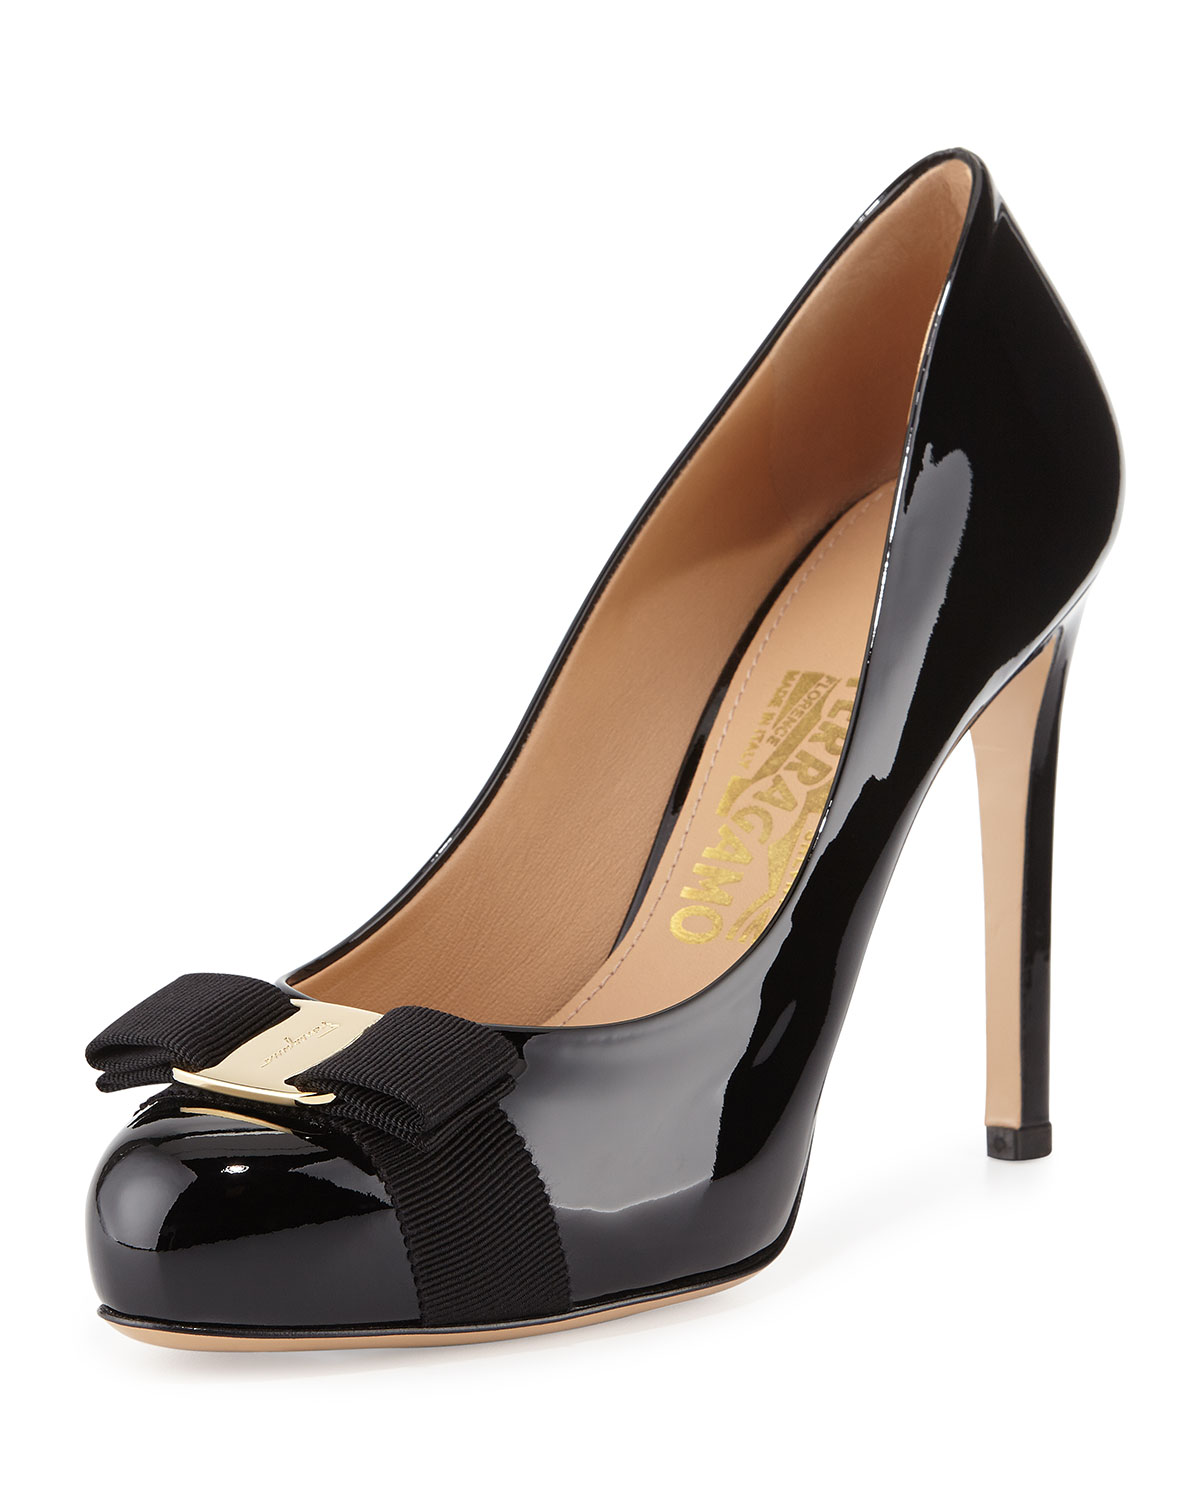 Salvatore Ferragamo Square-Toe Bow Pumps discount best place cheap footlocker pictures free shipping pay with visa VuV4cHPg